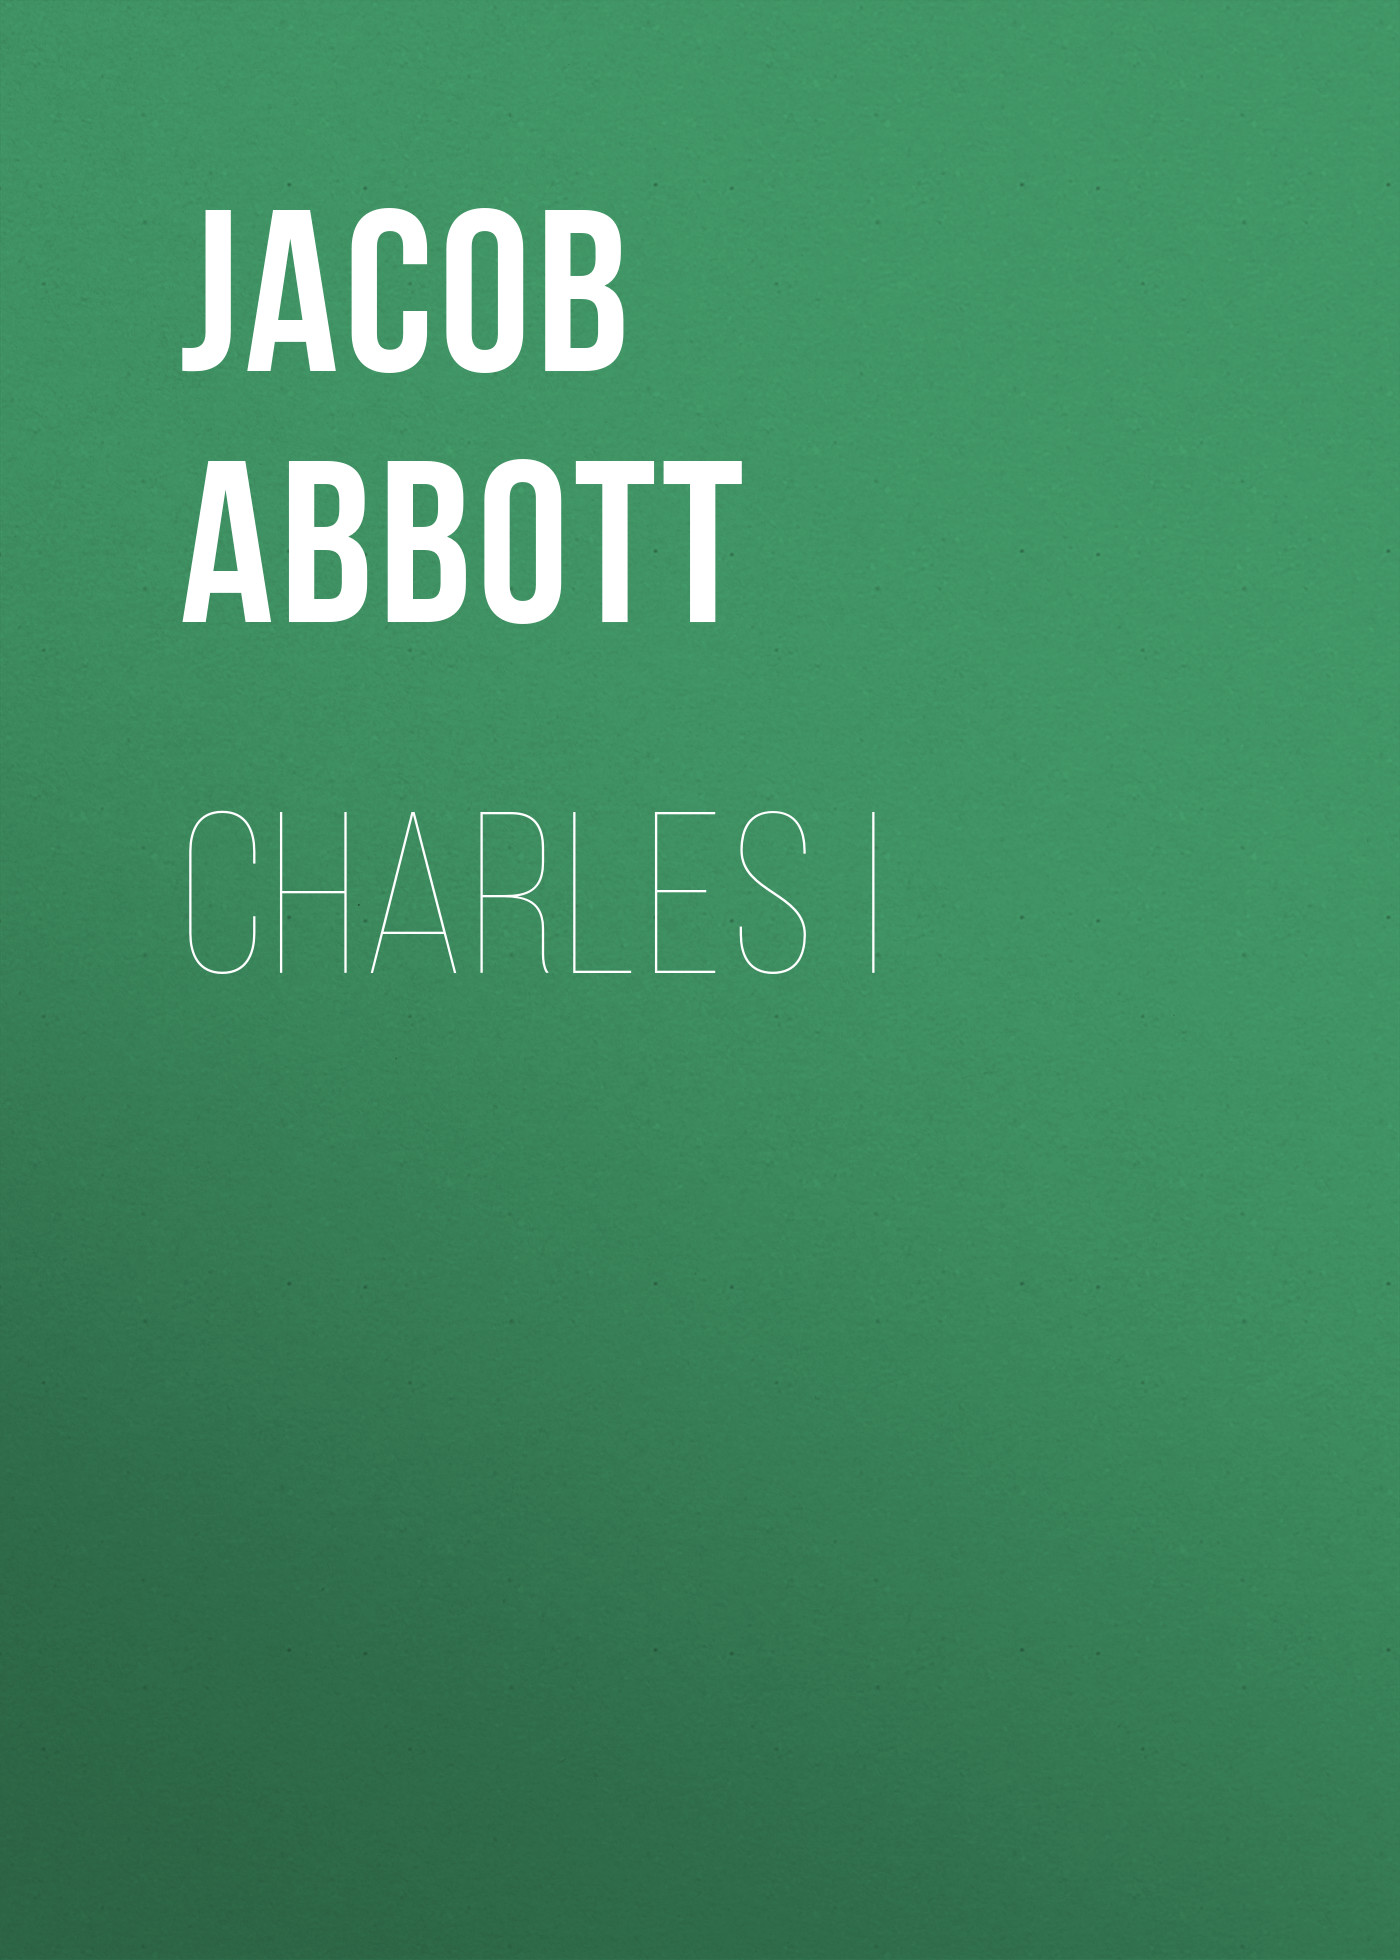 Abbott Jacob Charles I abbott jacob nero